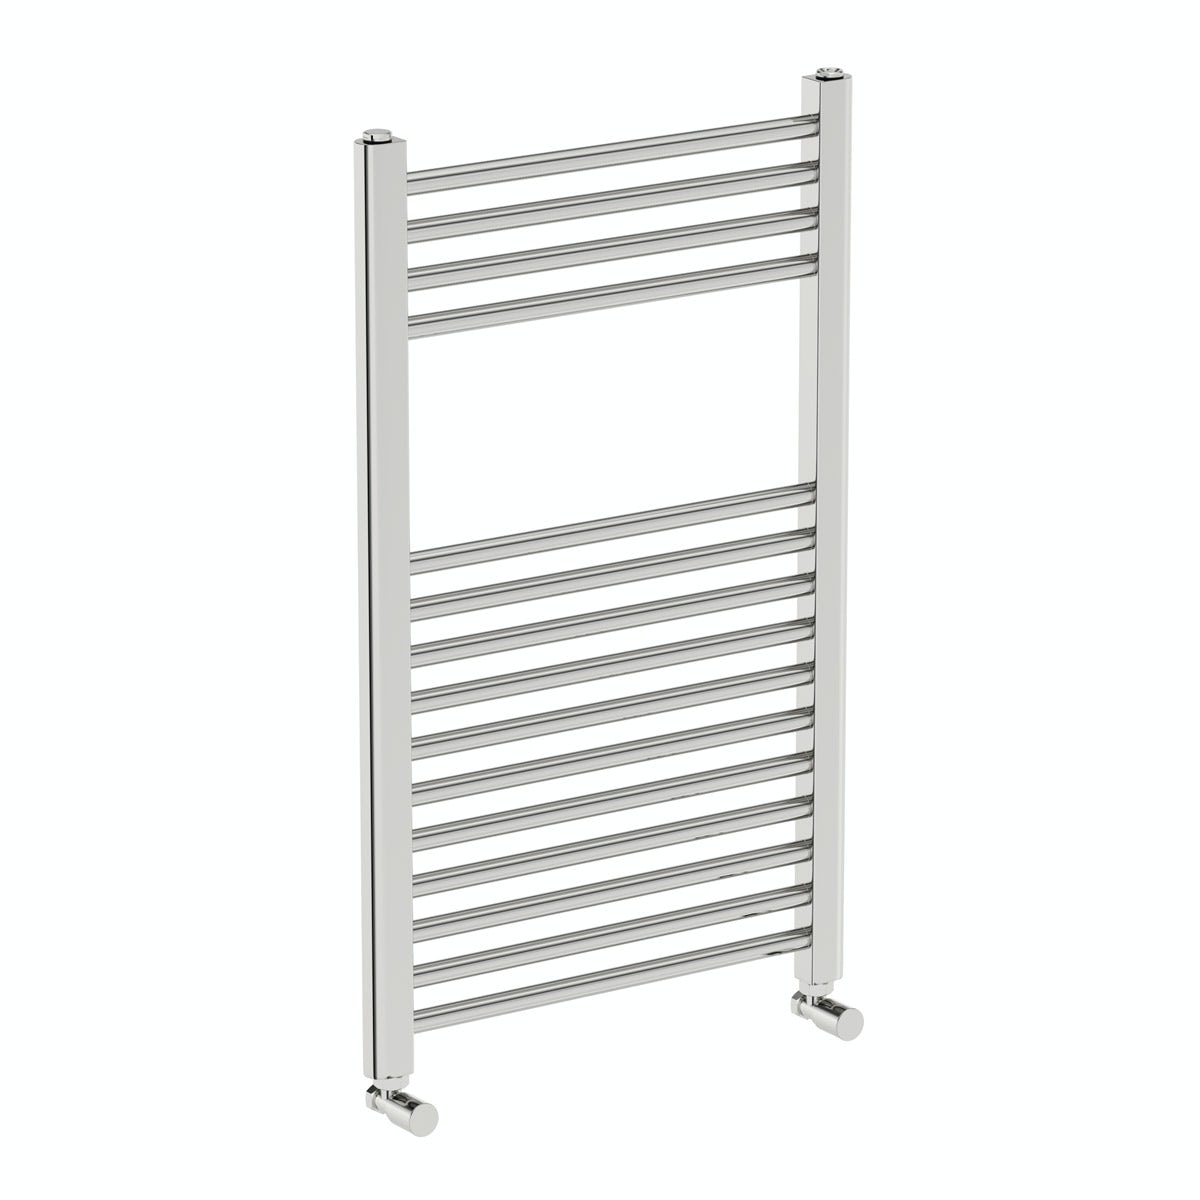 Orchard Eden round heated towel rail 800 x 490